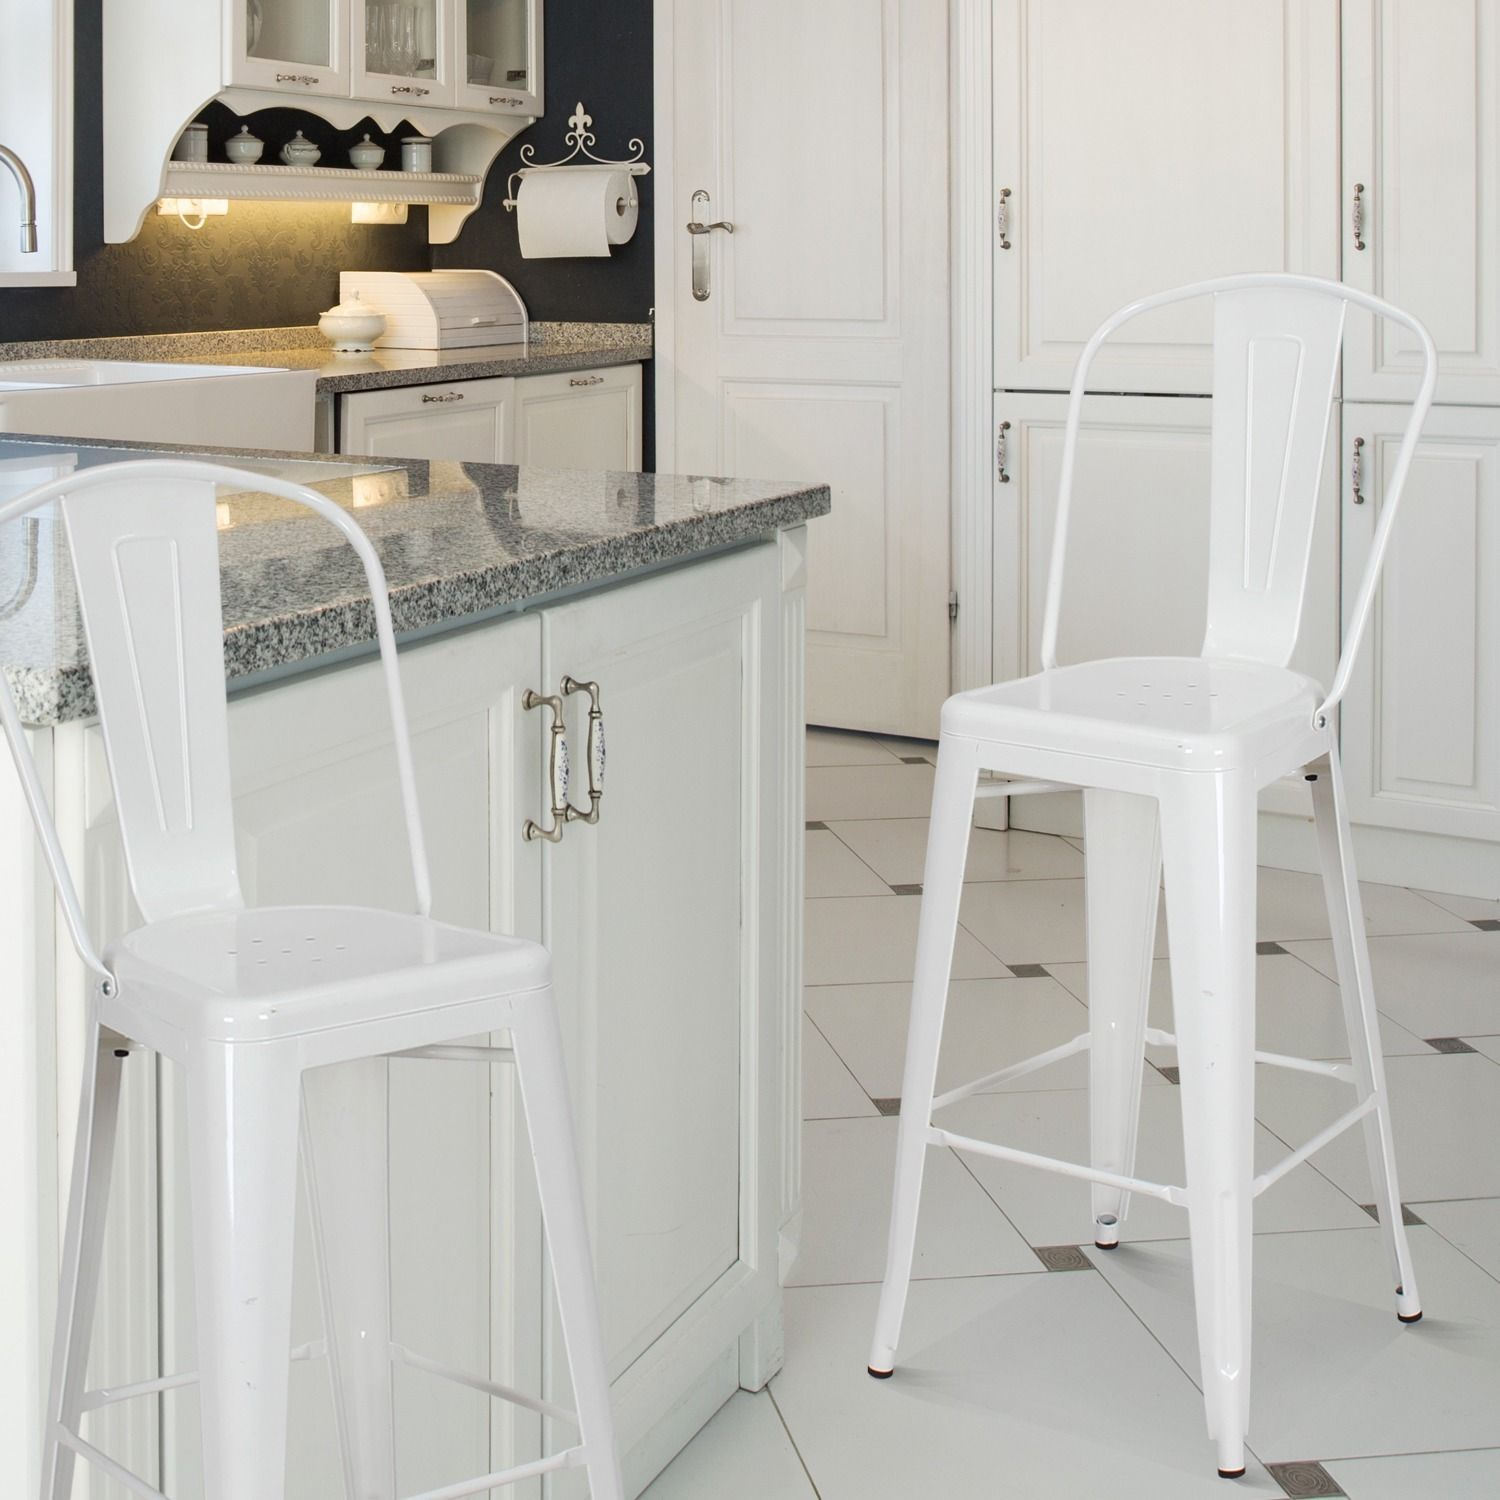 Free Shipping Furniture Stores: Bar Stools White Home Goods: Free Shipping On Orders Over